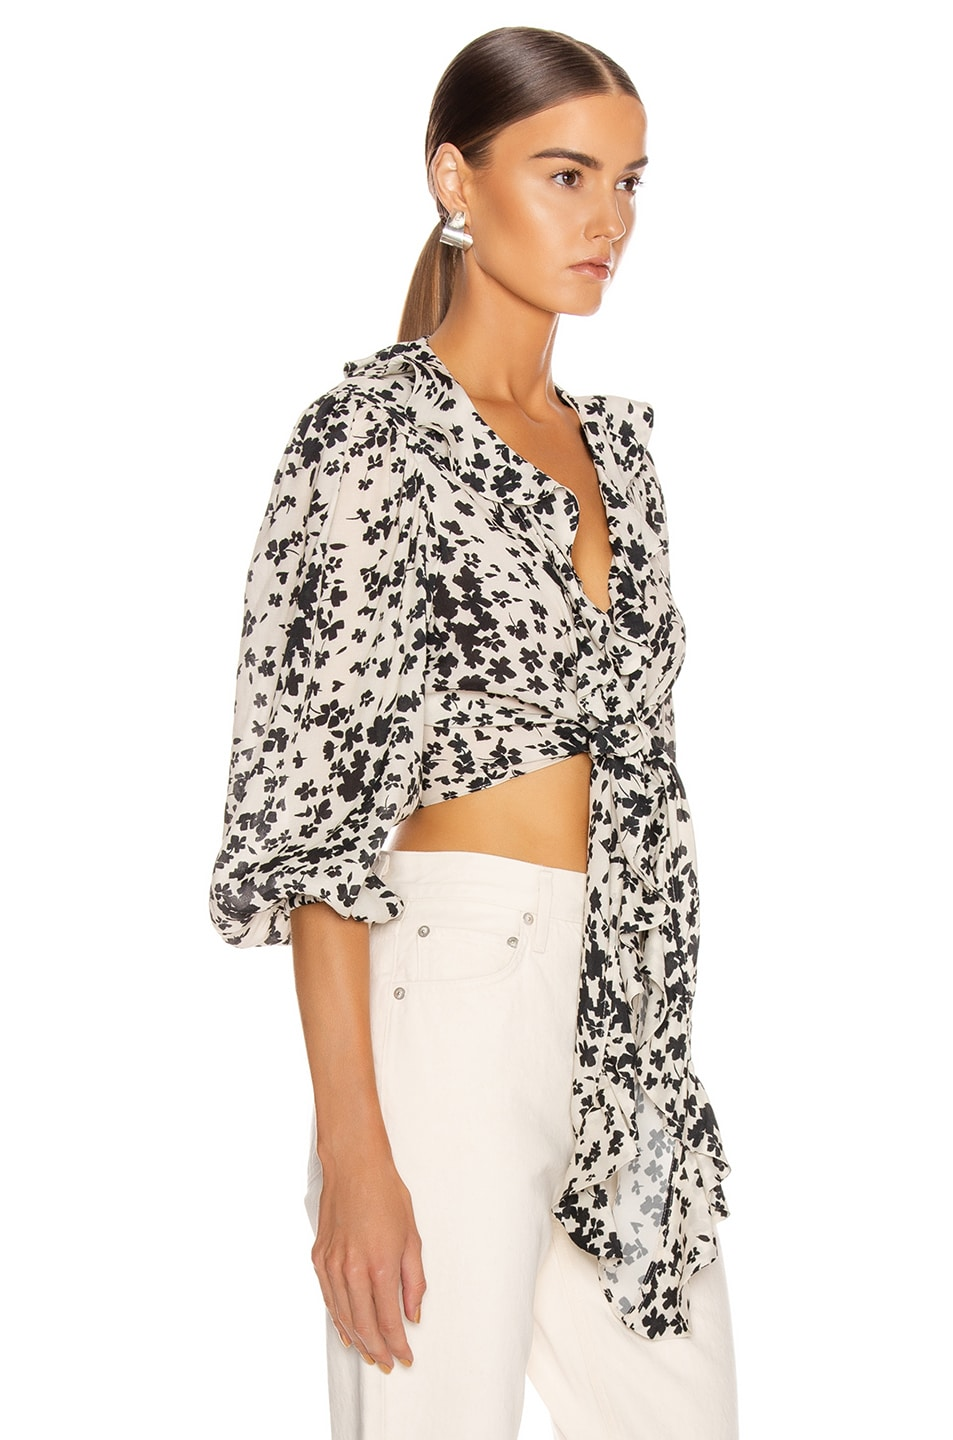 Image 2 of ICONS Objects of Devotion The Doherty Top in Ivory Black Floral